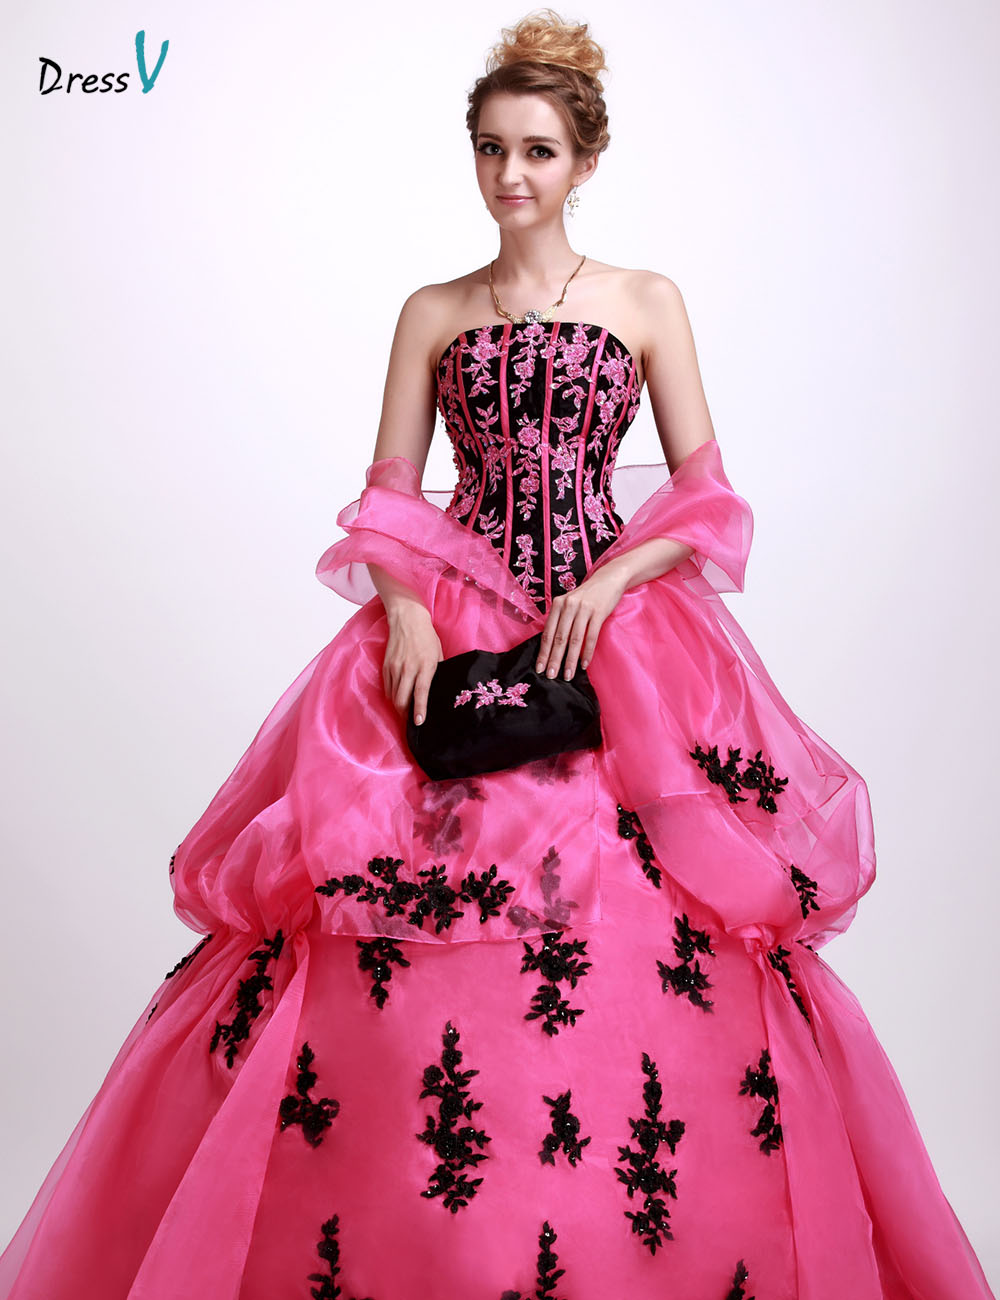 Dressv empire lace up floor length quinceanera dress dramatic strapless sleeveless ball gown quinceanera dress with jacket/shawl(China (Mainland))